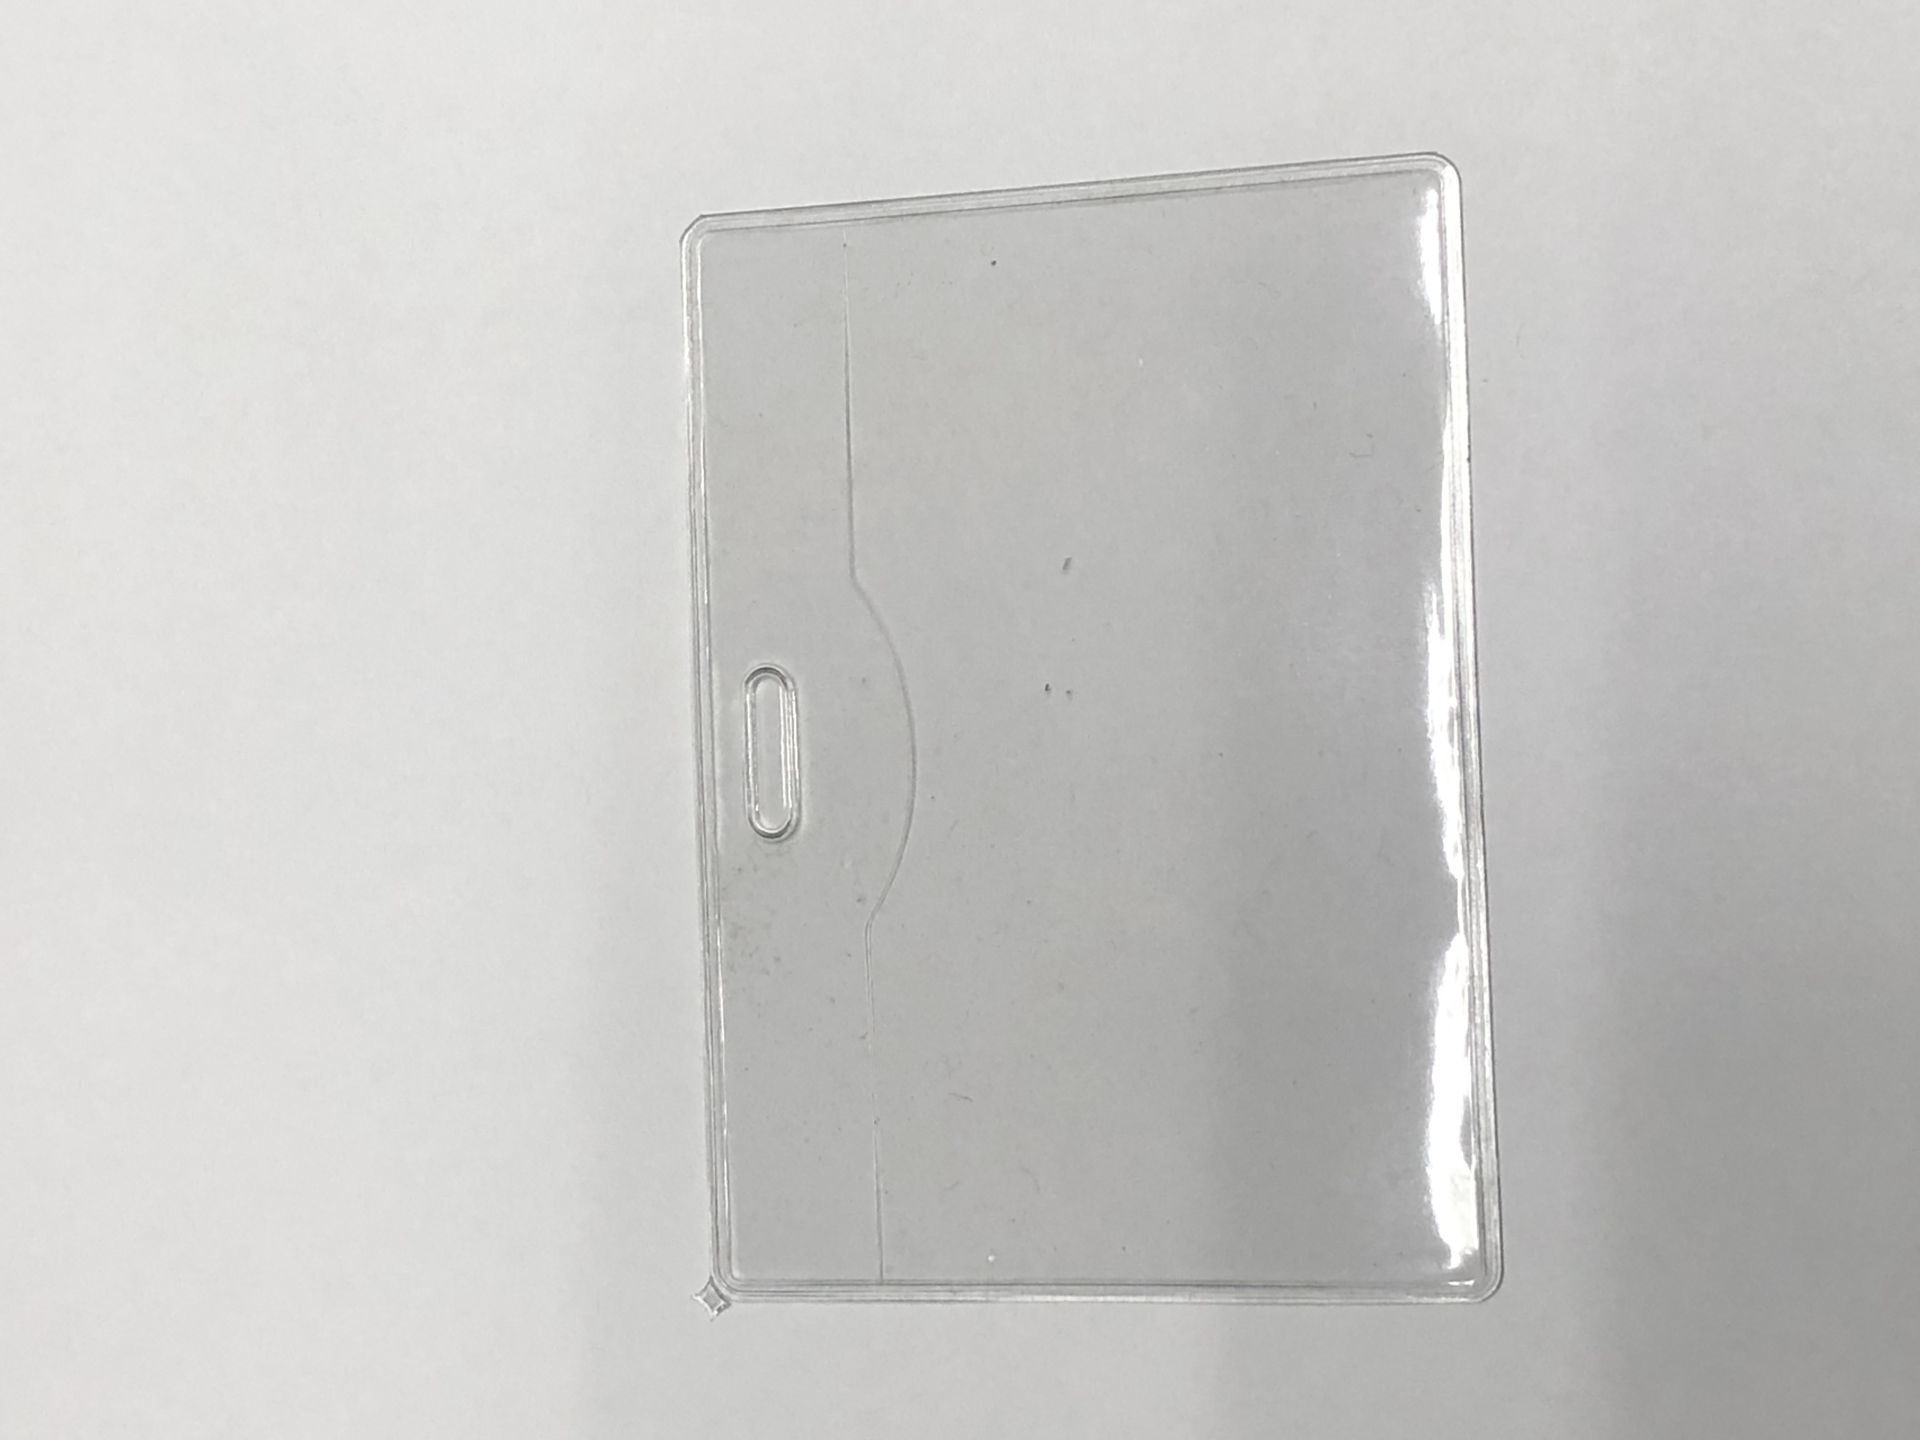 Picture of 02-004 CF 3 7/8 x 2 3/4 ID Card Holder (Horizontal)